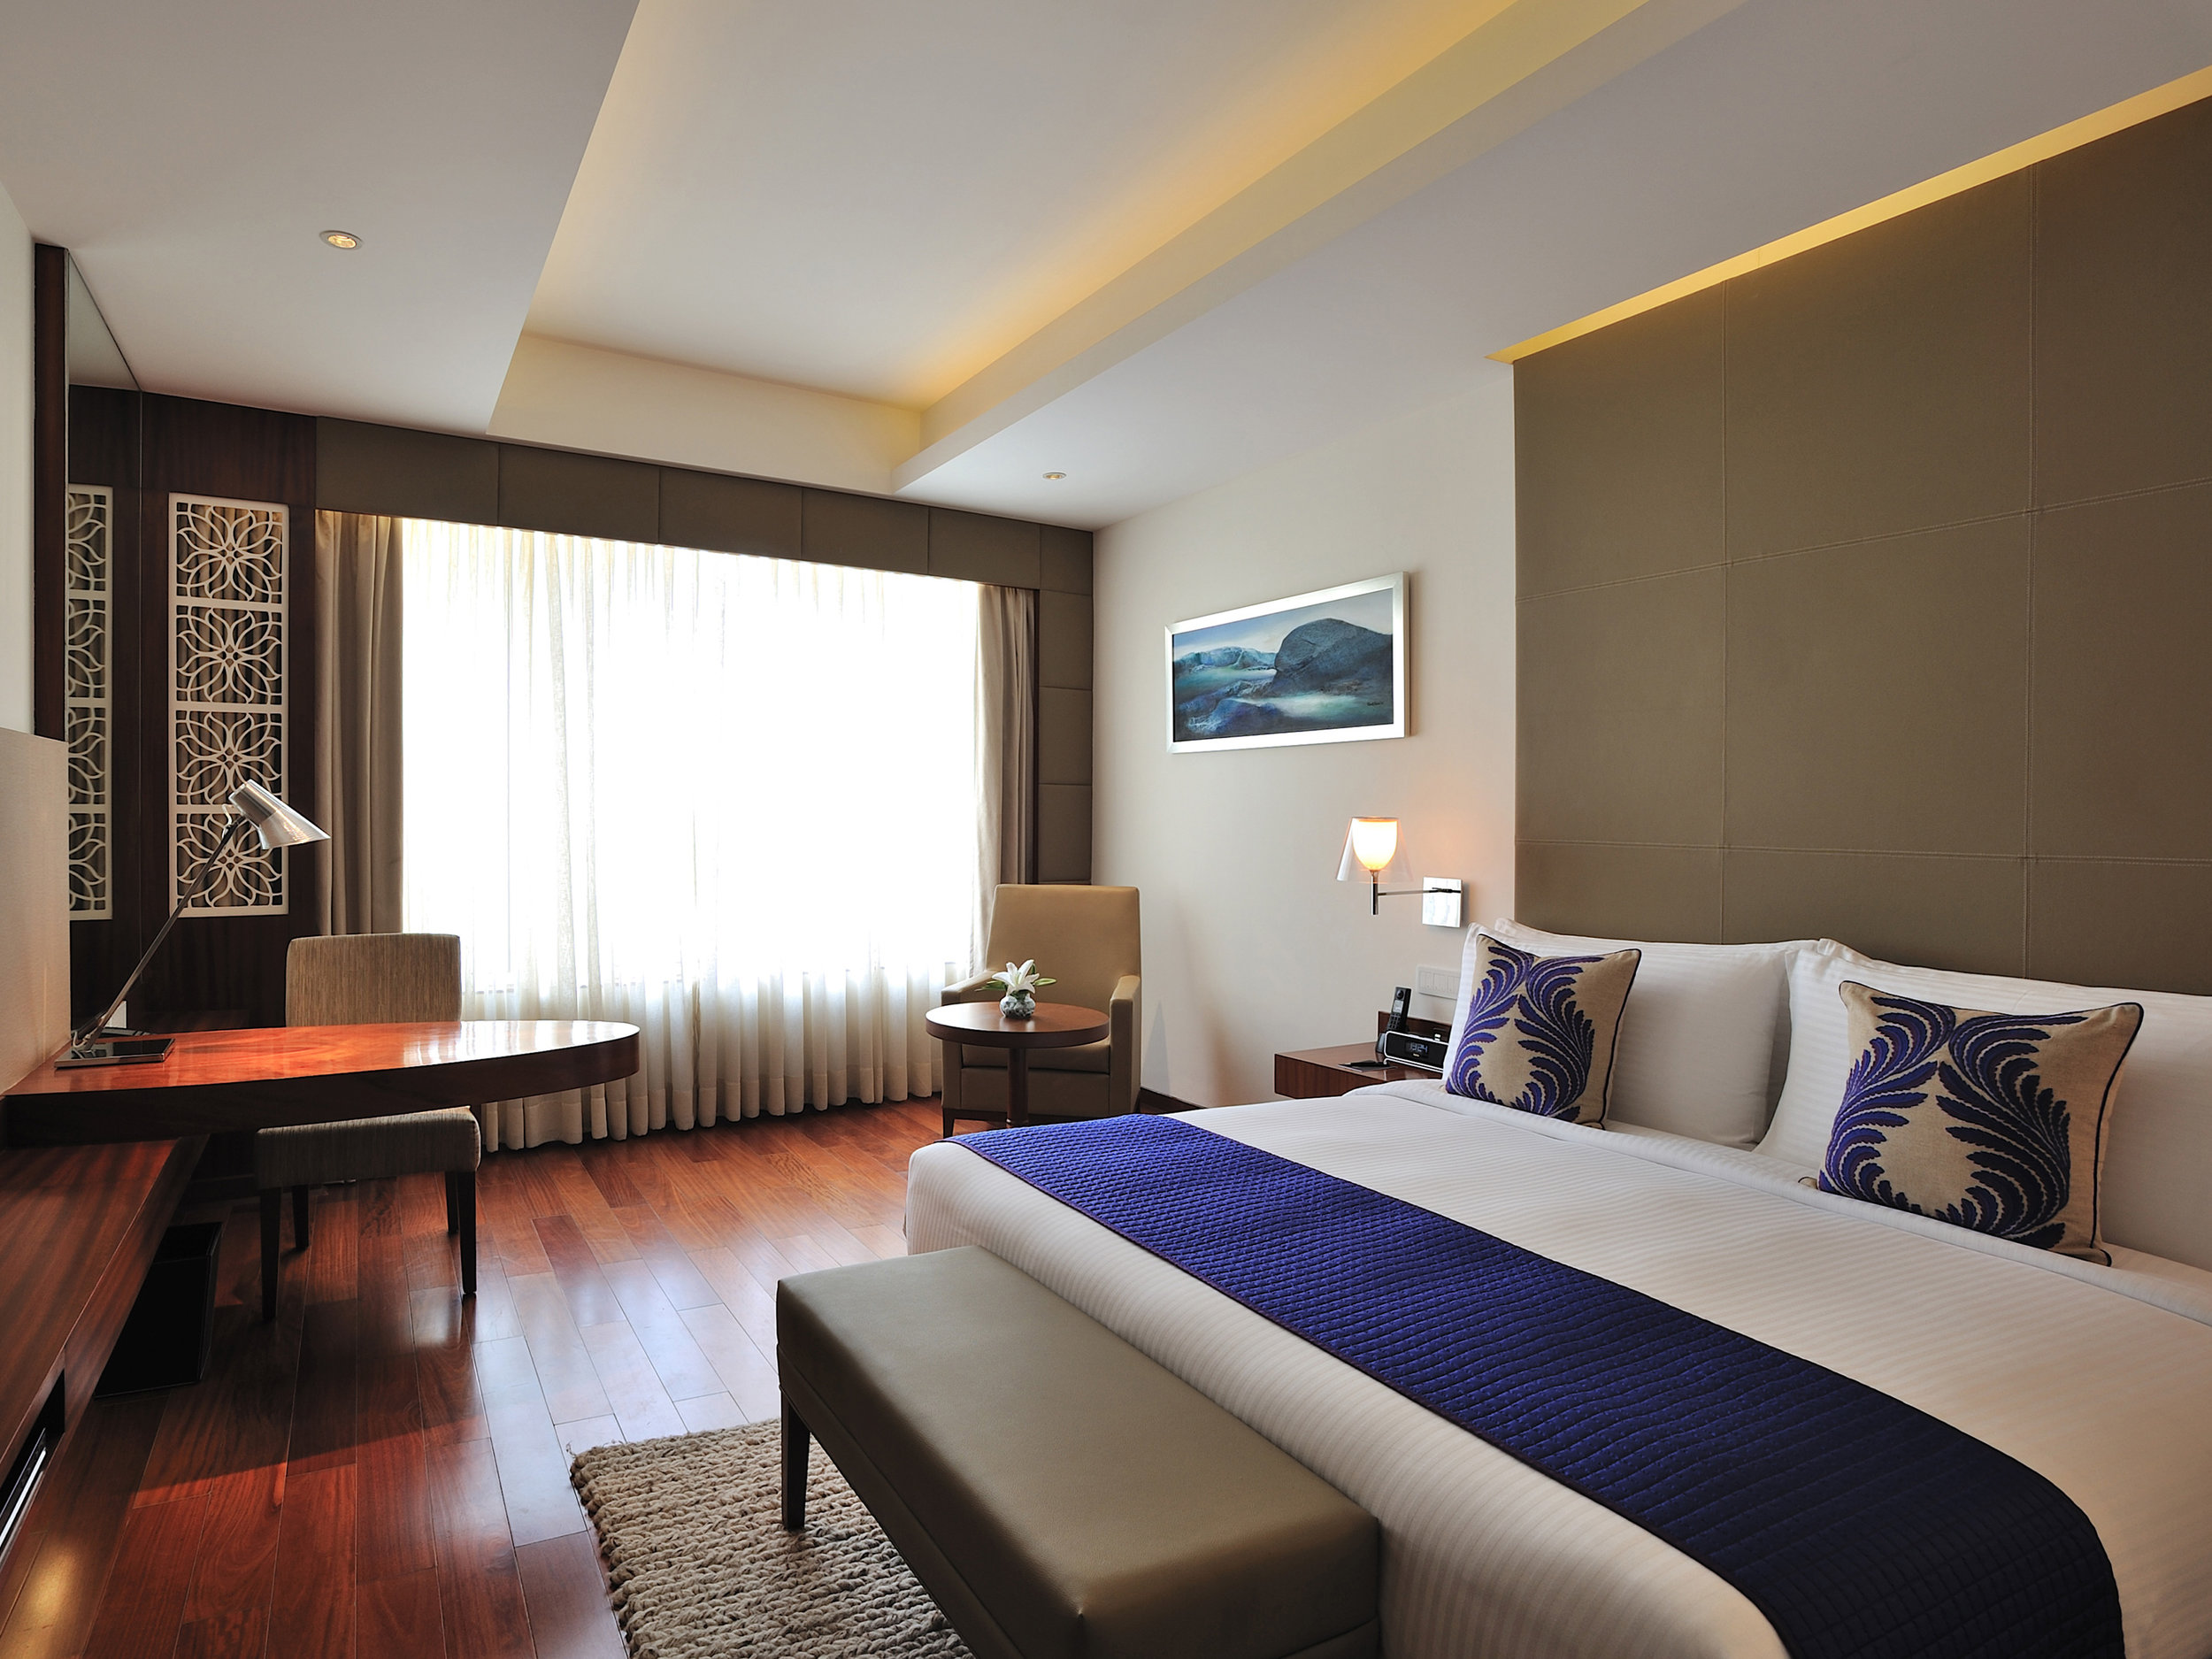 Anya Hotel, Gurugram/Gurgaon, Deluxe Room. Delhi NCR, India.